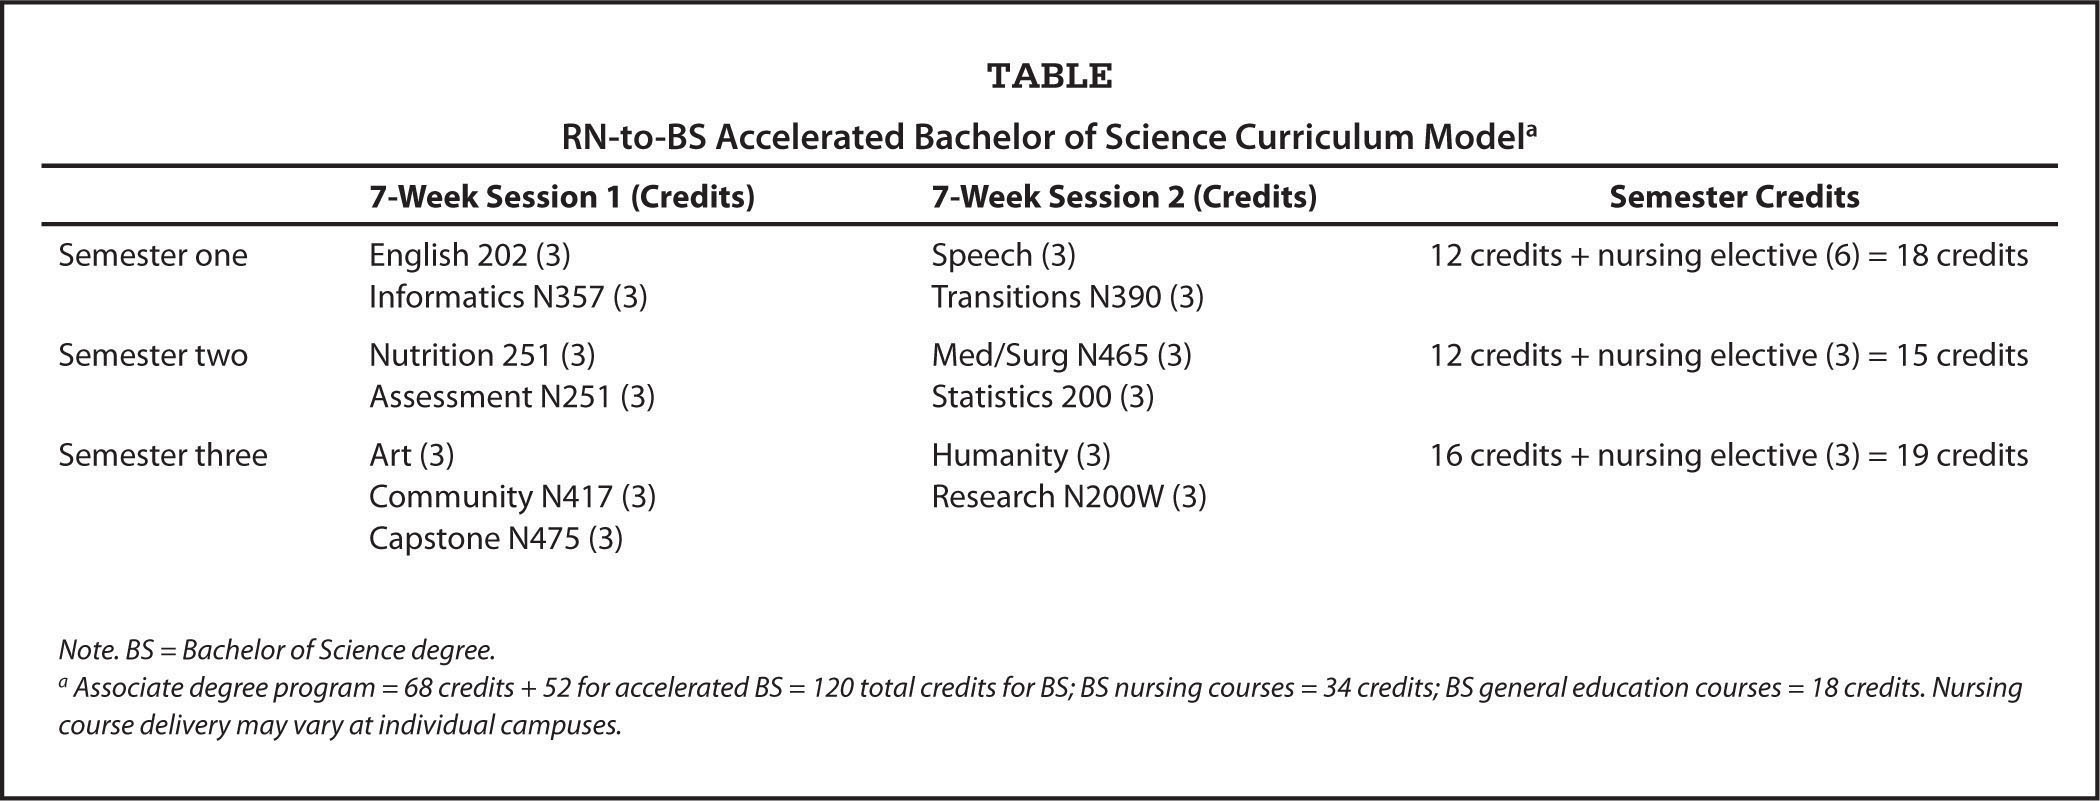 RN-to-BS Accelerated Bachelor of Science Curriculum Modela